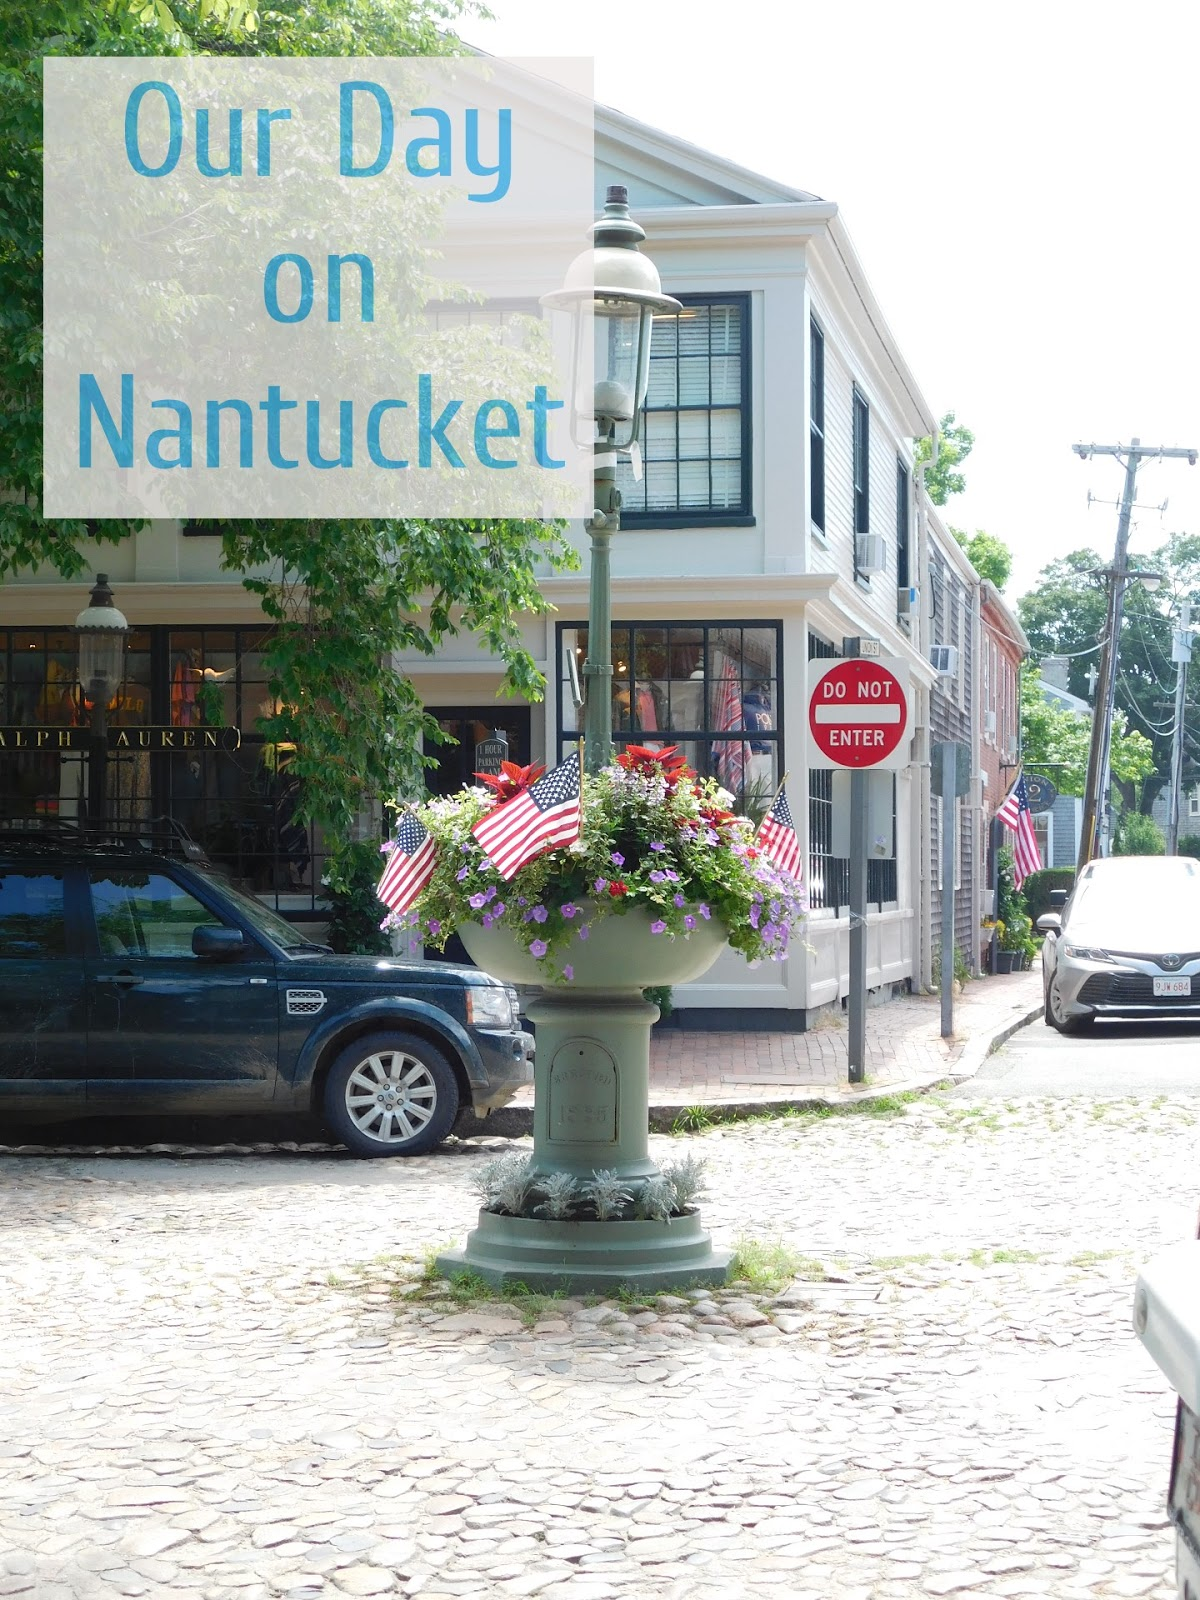 Weekend Trip to Cape Cod and Nantucket-- Day 2